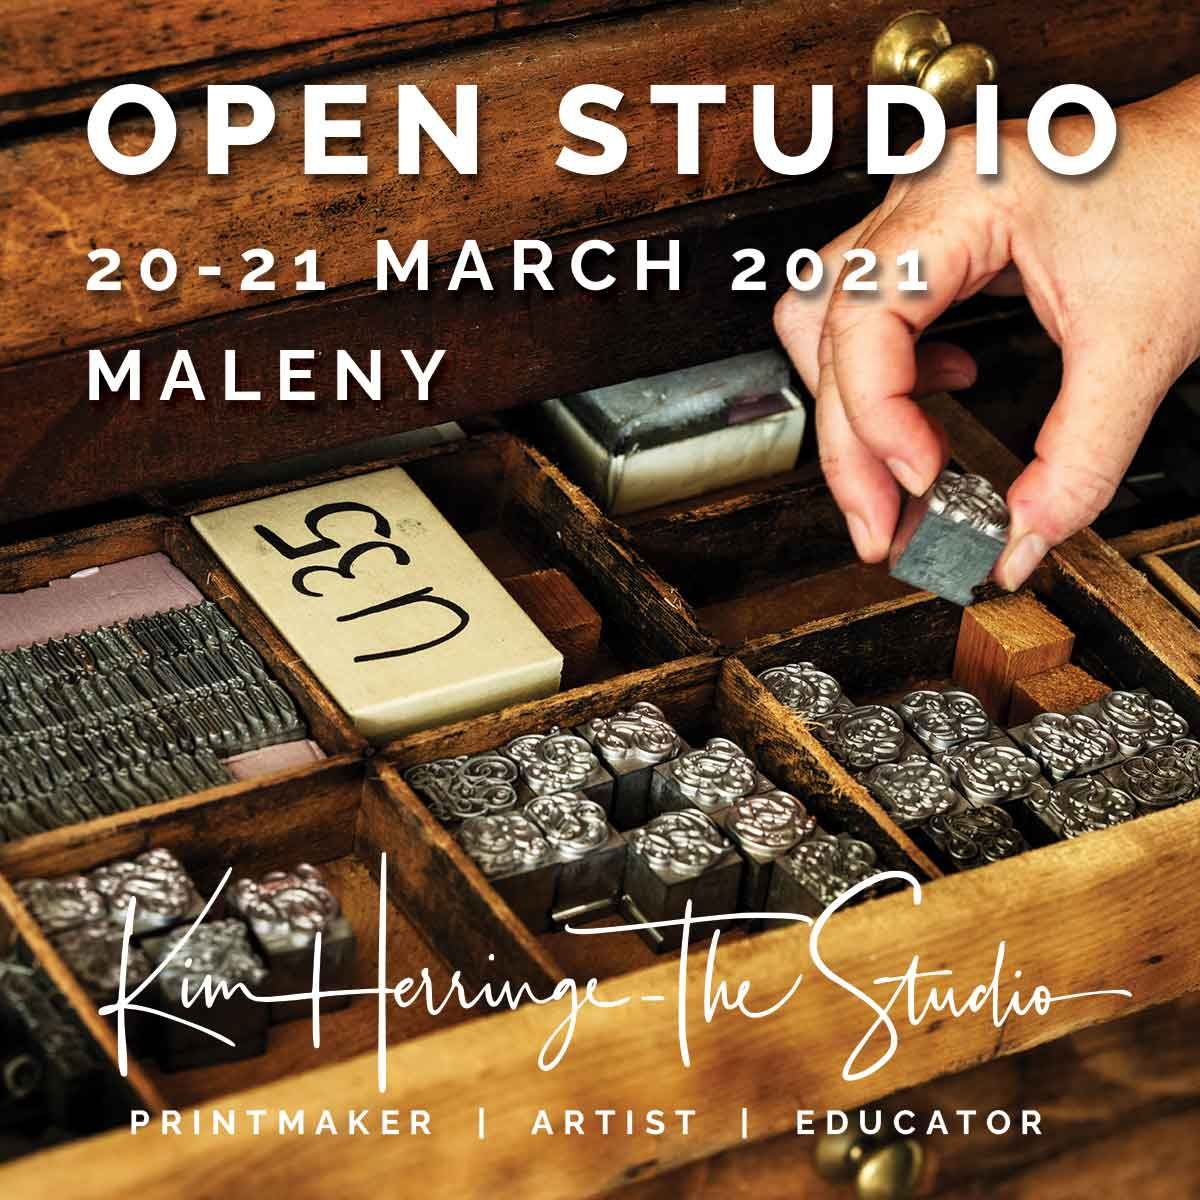 Open Studios Sunshine Coast 20-21 March - Kim Herringe, Maleny